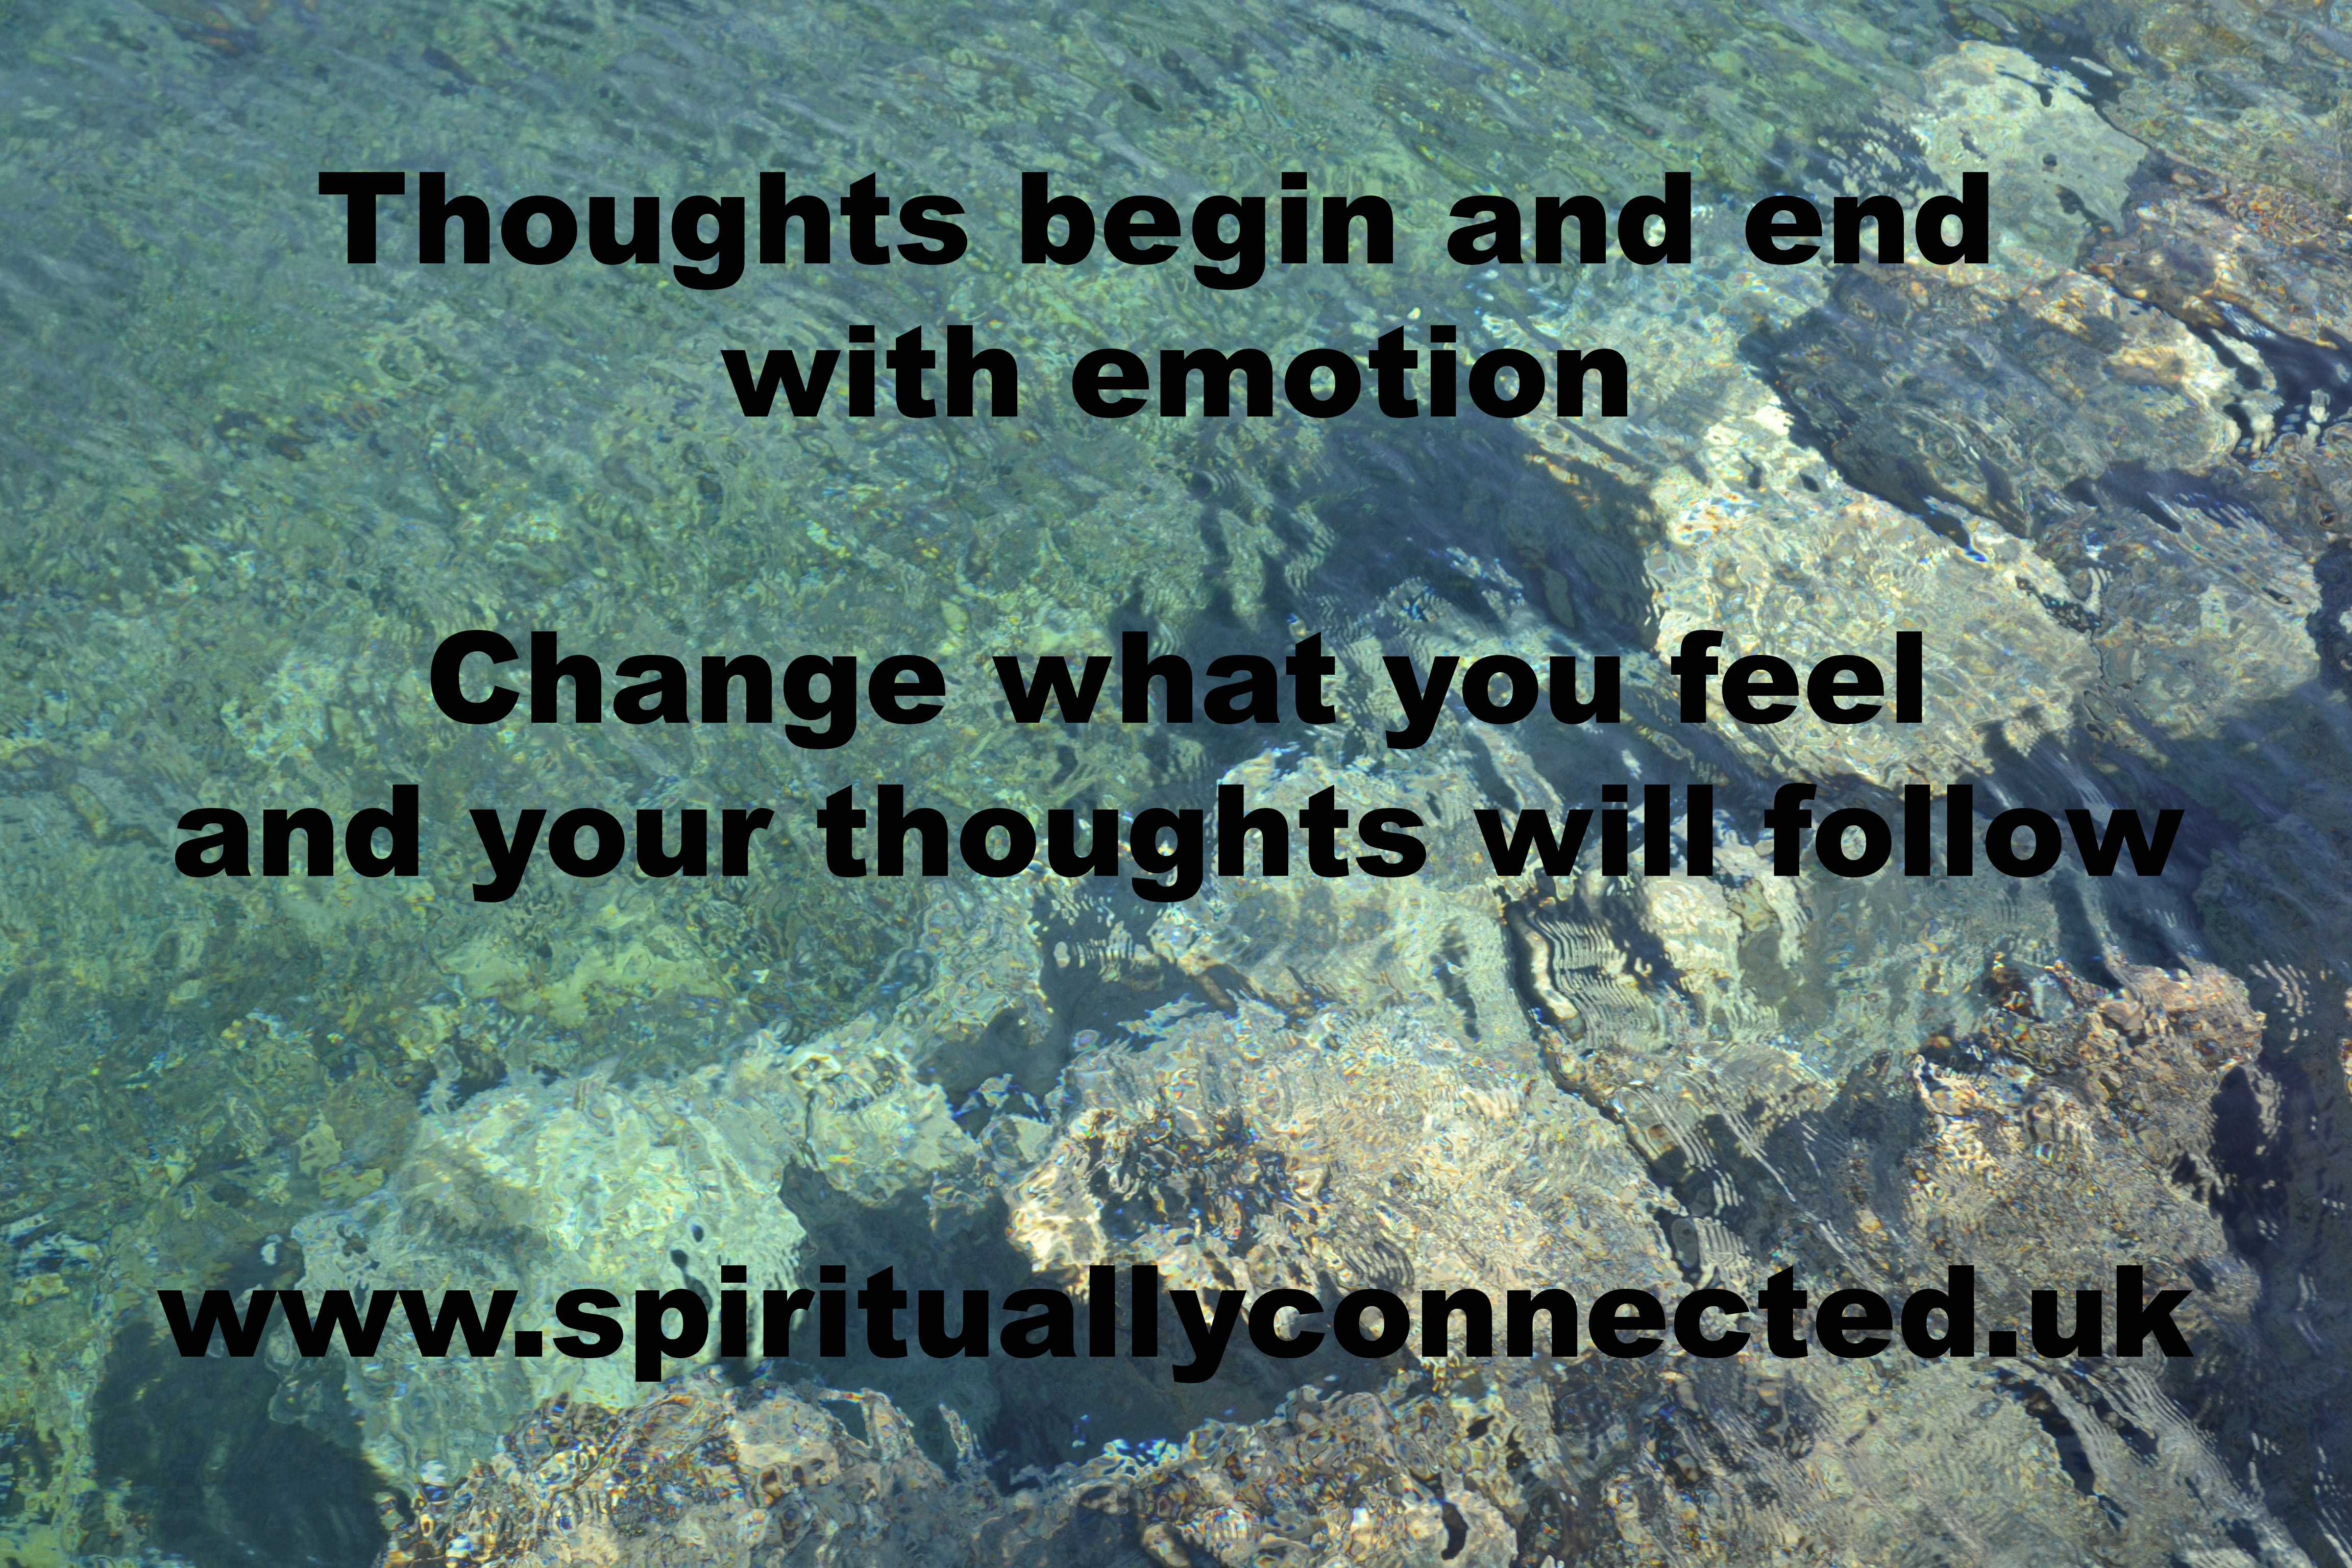 Thought begins and ends with Emotion